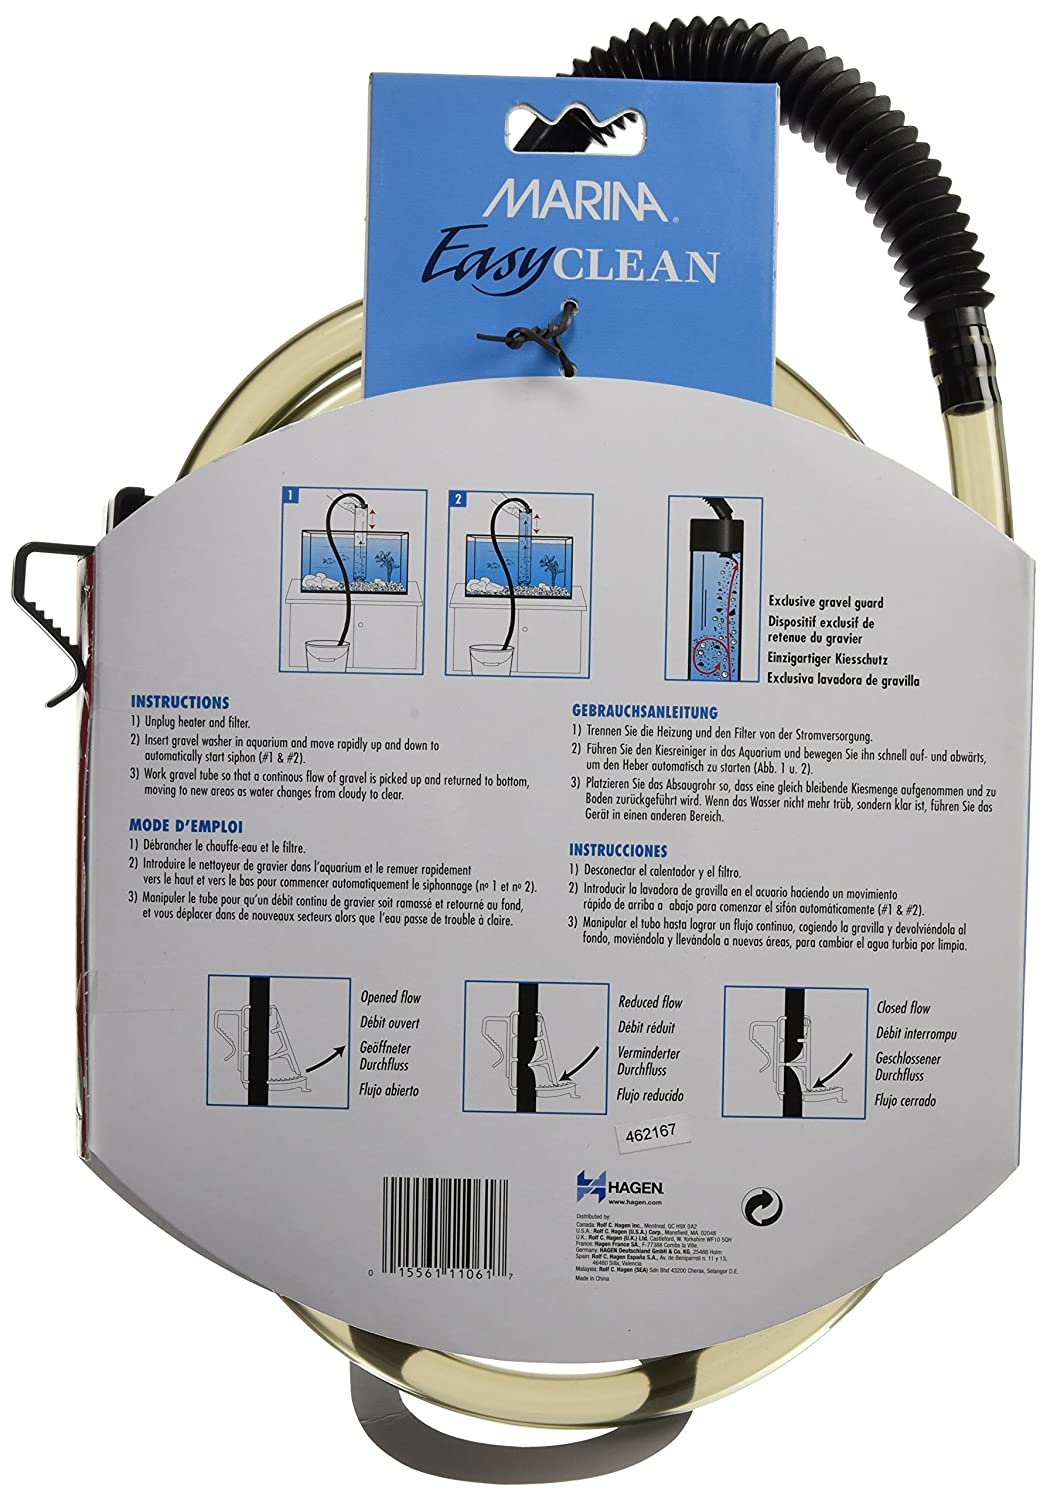 Amazon.com : Marina Easy Clean Gravel Cleaner, Mini : Aquarium Gravel Cleaners : Pet Supplies